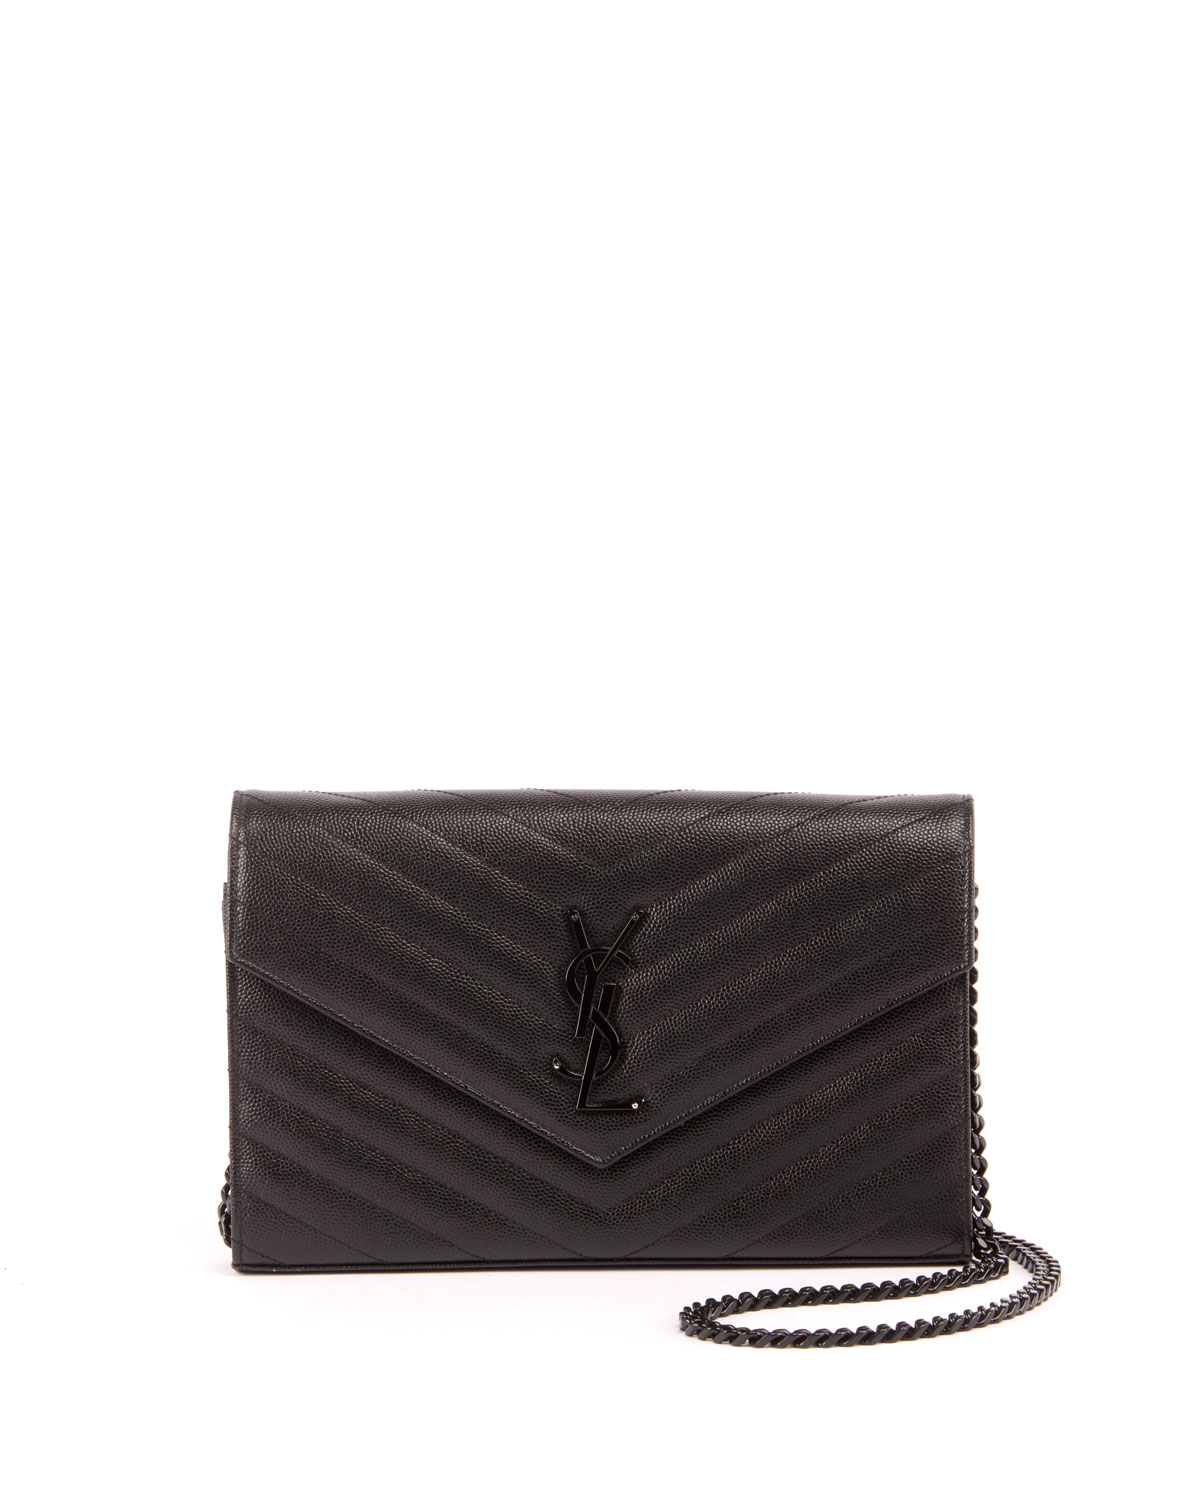 Saint Laurent Monogram Ysl Small Matelasse Envelope Chain